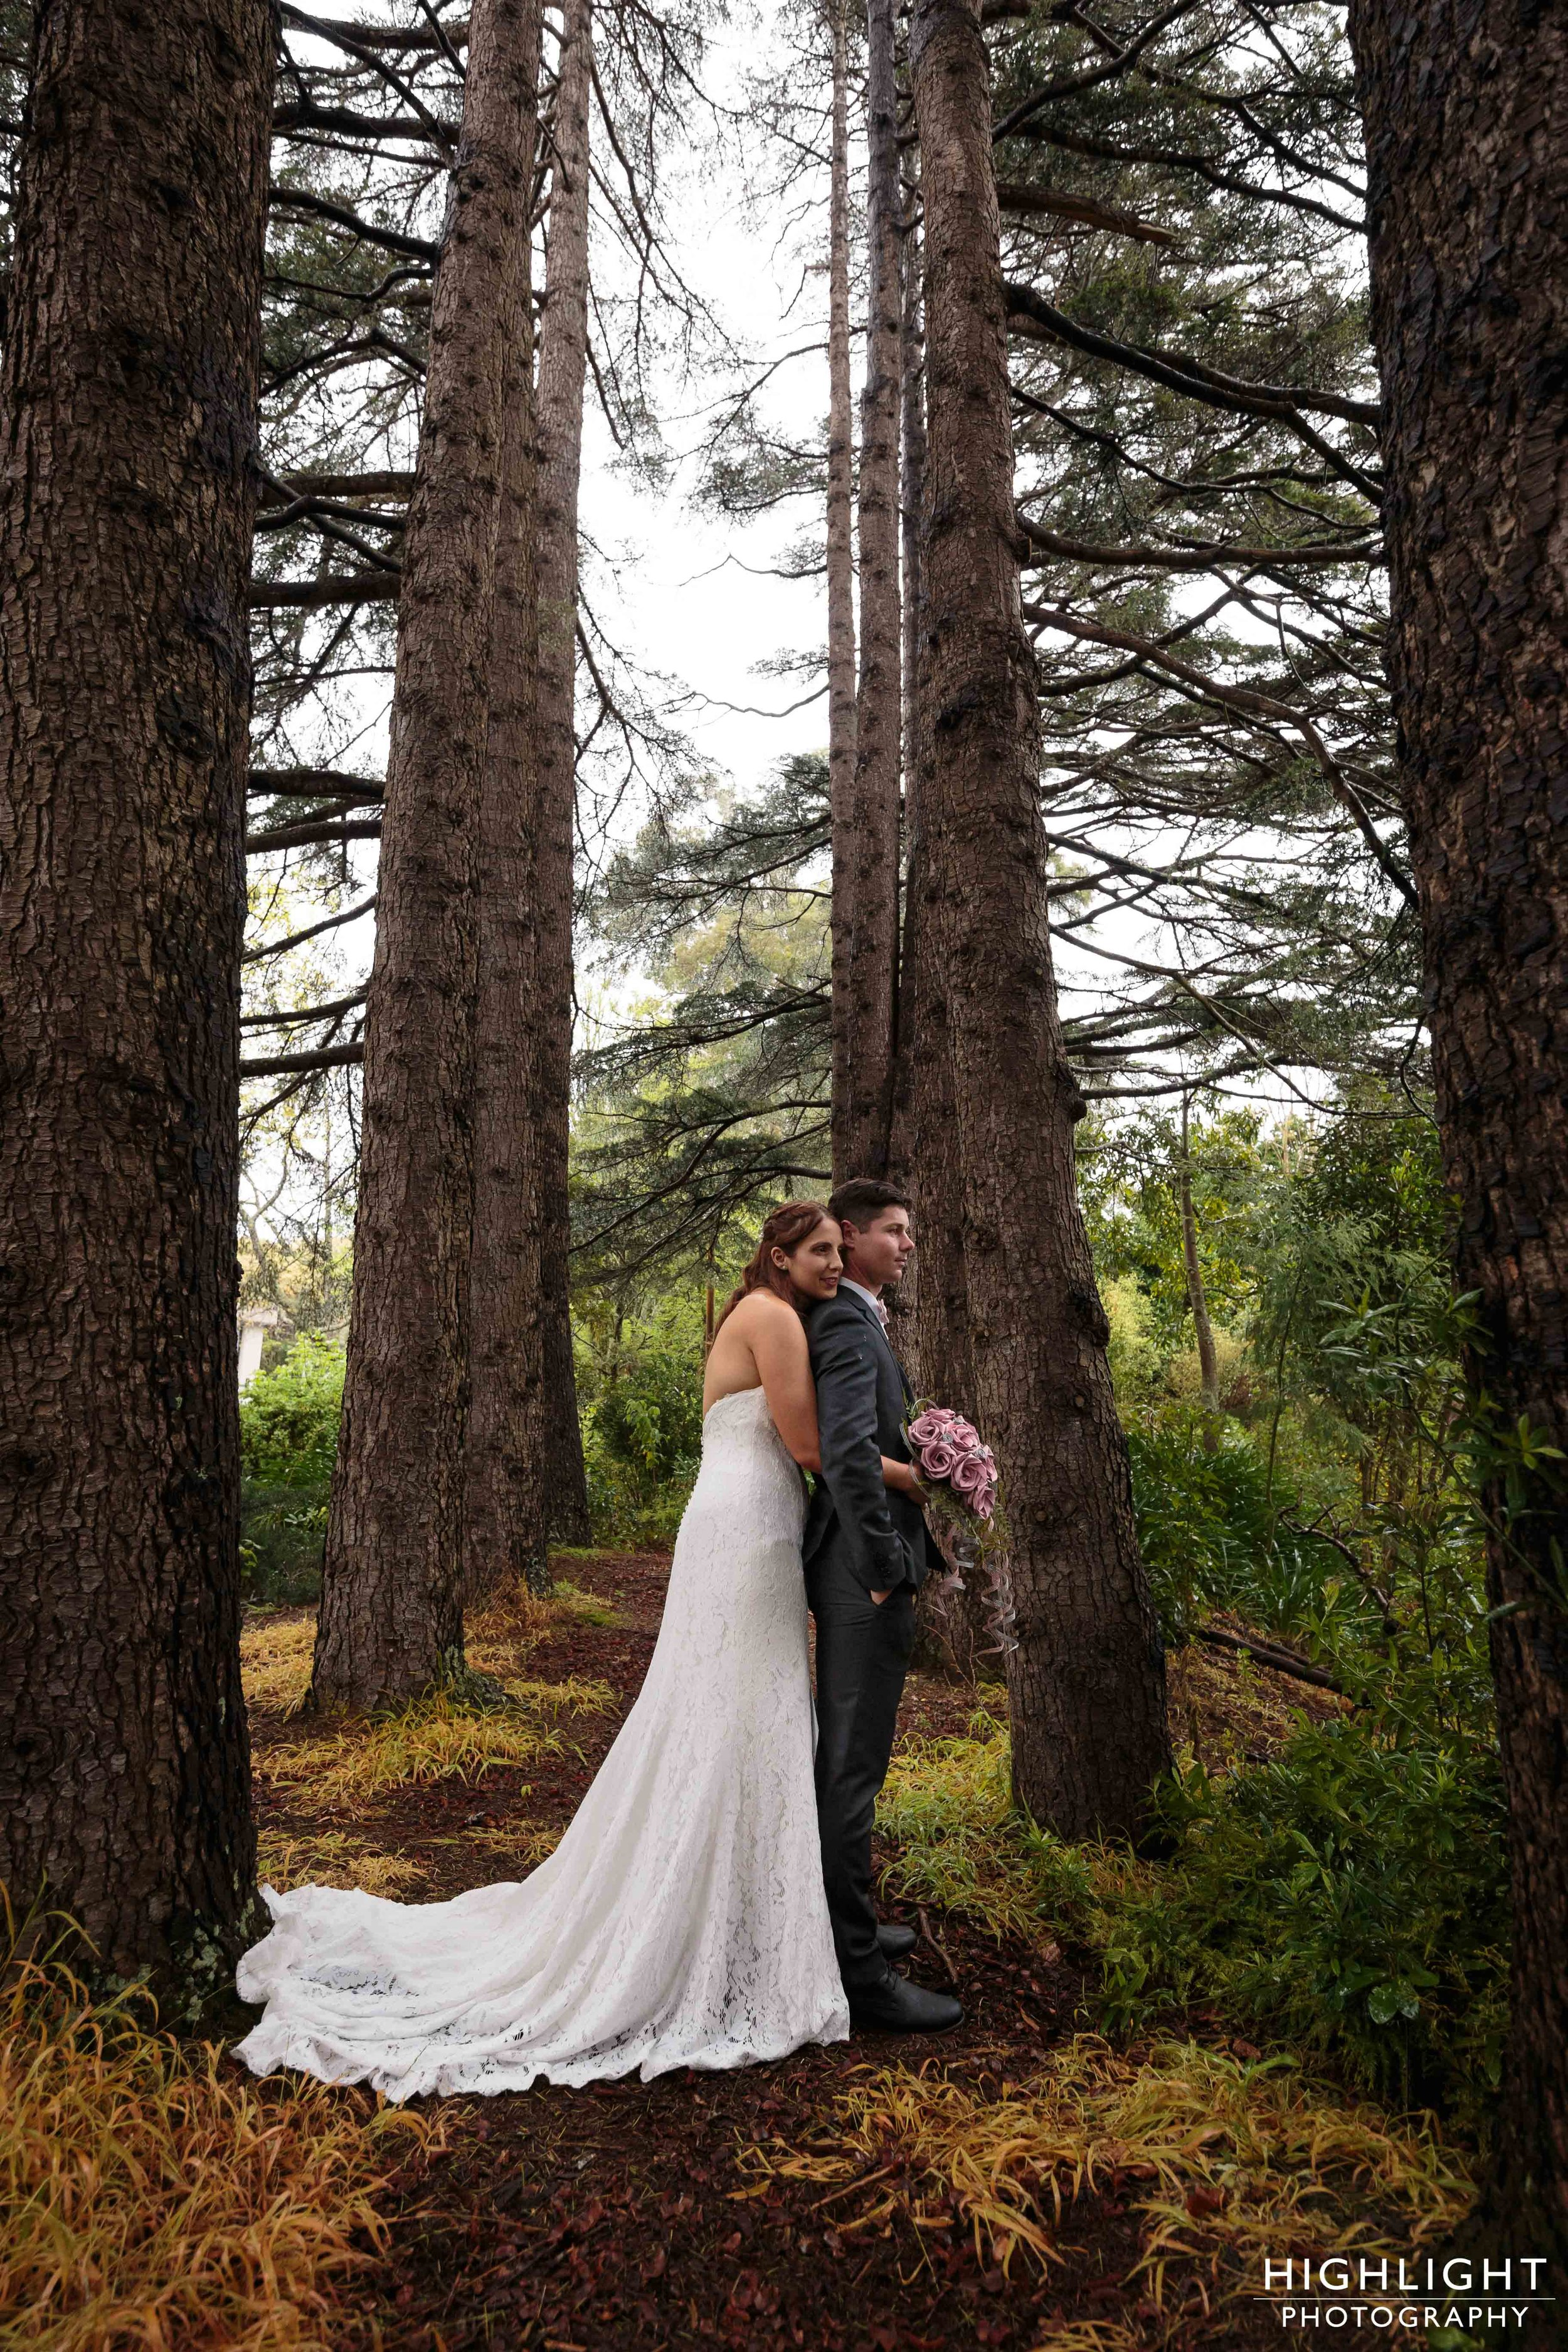 highlight-wedding-photography-palmerston-north-new-zealand-sarahben-2017-58.jpg